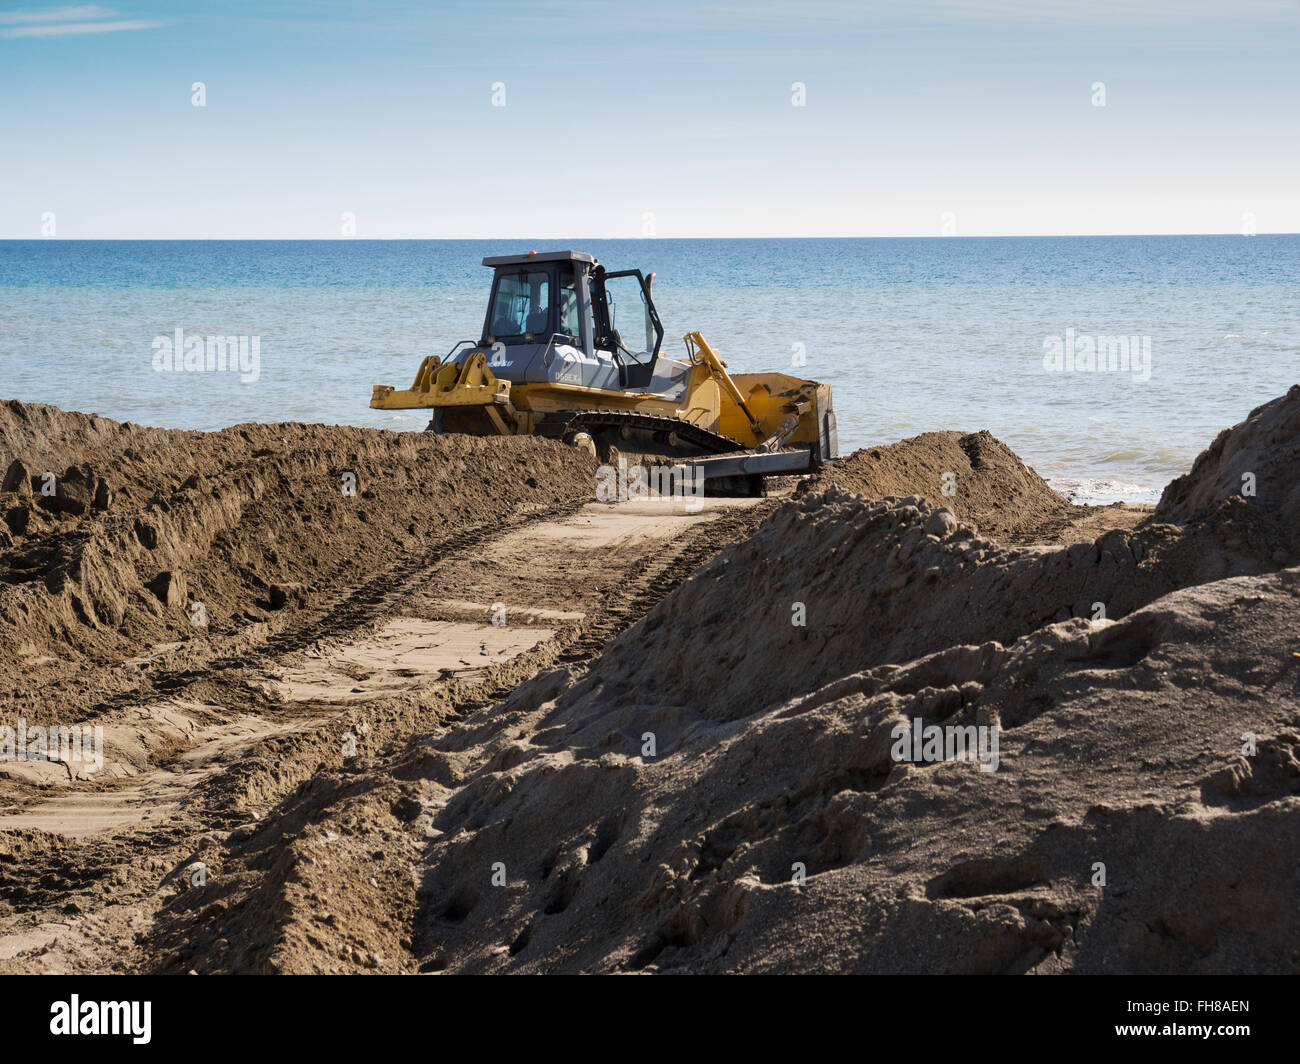 Bulldozer, Beach sand regeneration eroded by waves, Mijas Malaga province Costa del Sol. Andalusia southern Spain - Stock Image